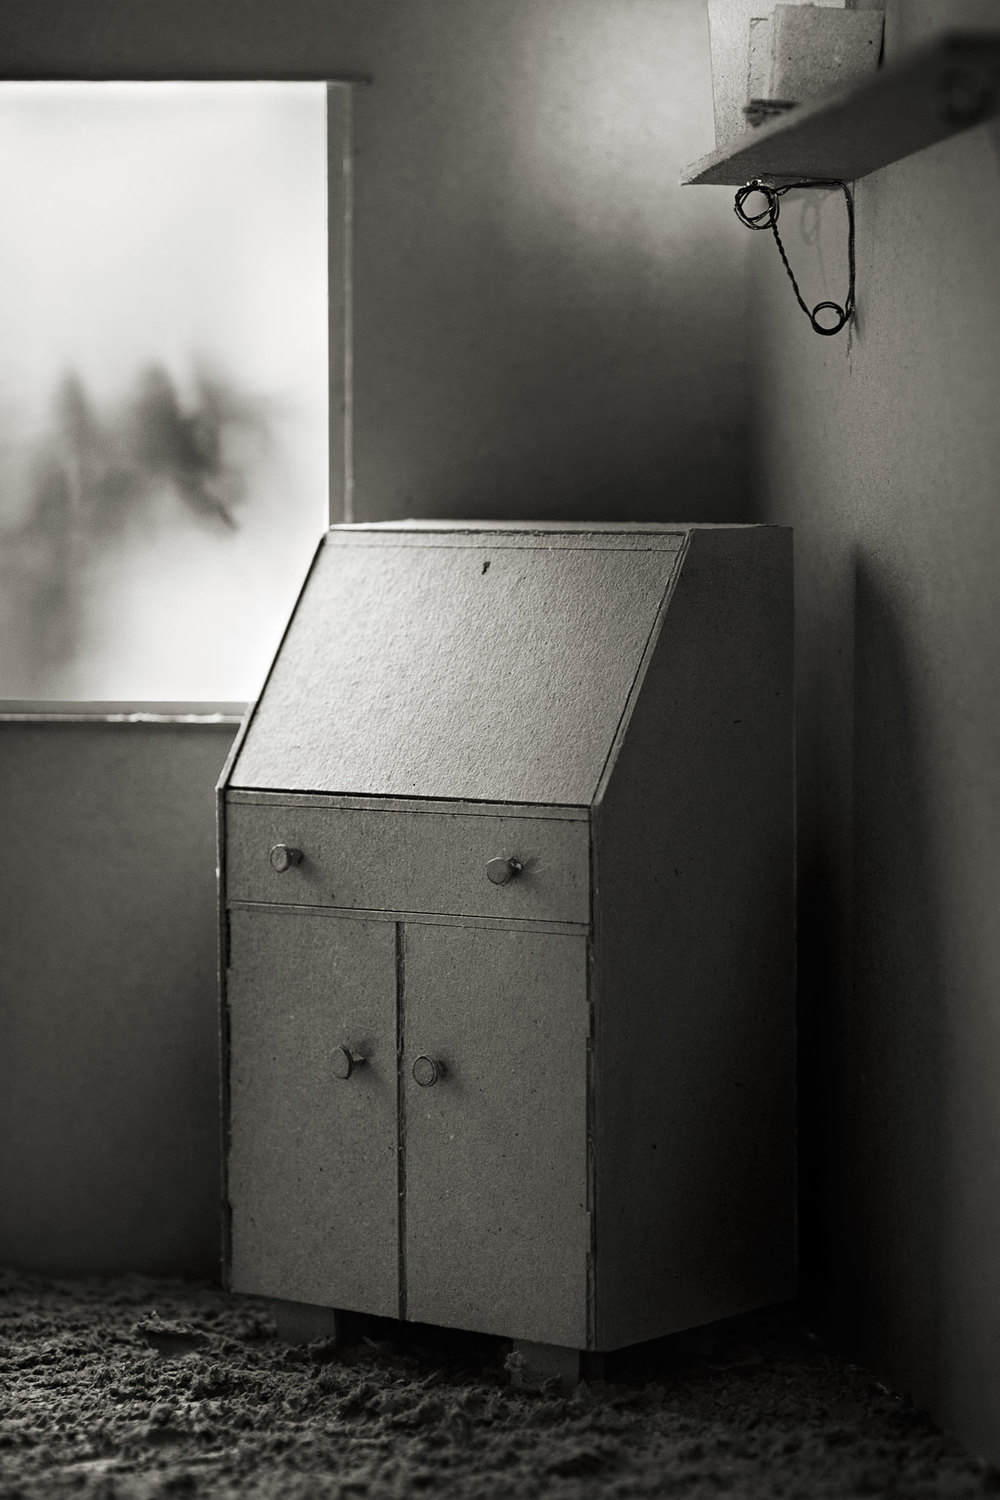 Like A Thief In The Night   Materials:  Inkjet Print on Museo Paper   Date Created:  2012, reworked 2014   Size:  6 x 9 inch